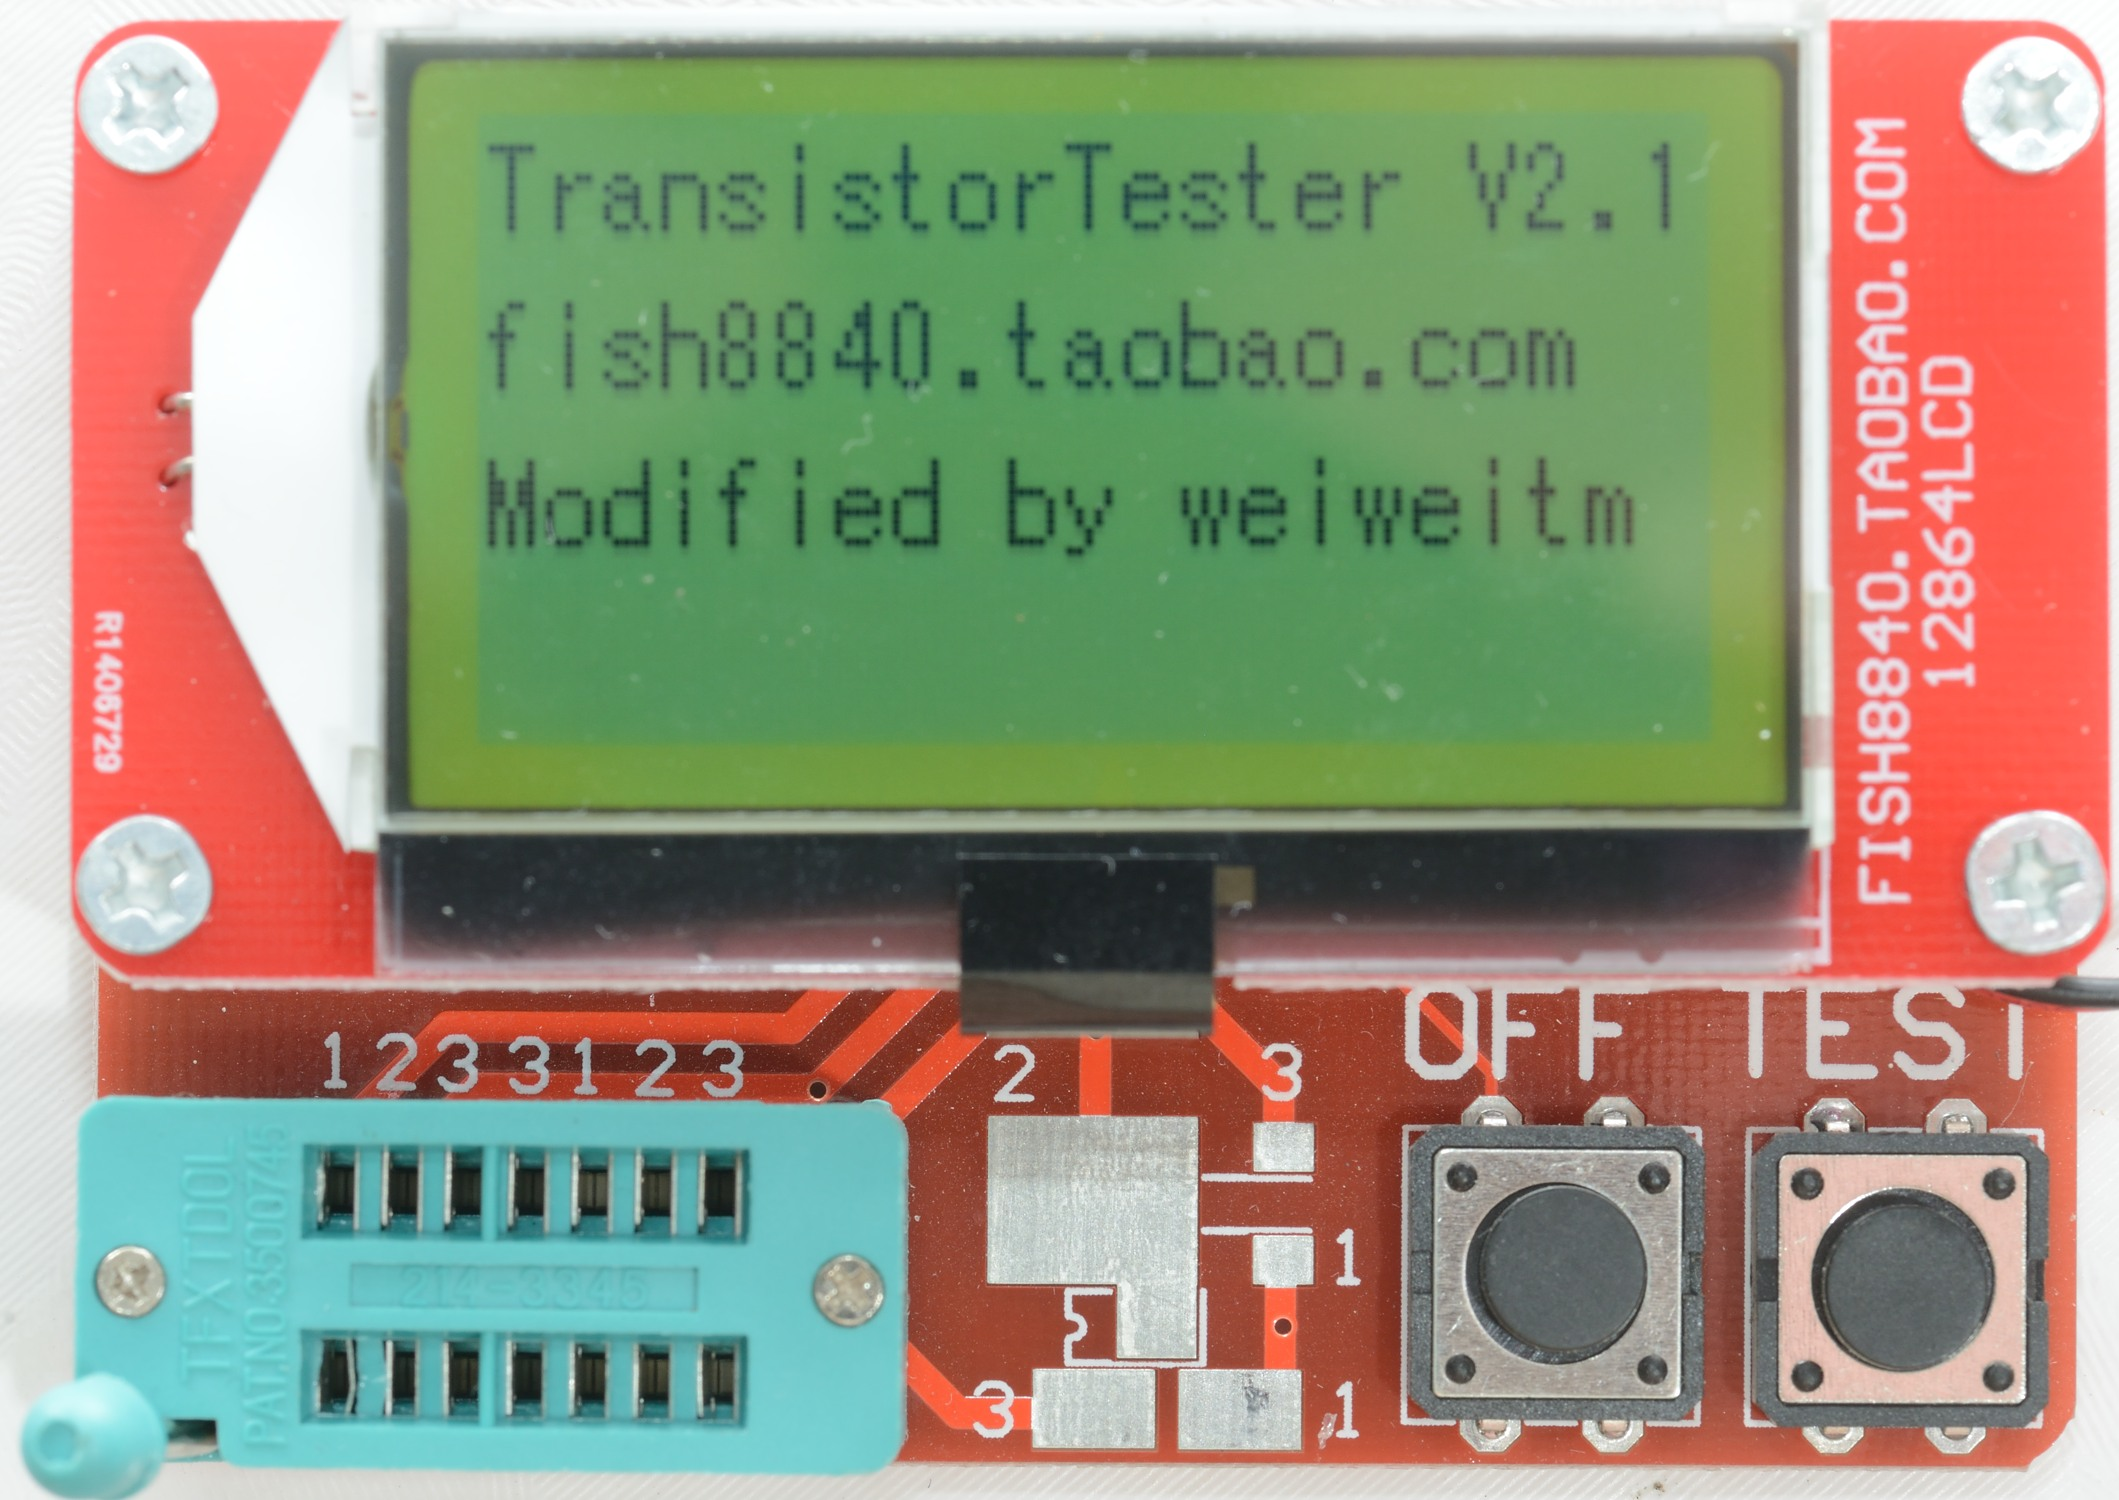 Test Review Of Component Tester Fish8840 Transistor For Repair How Does It Look